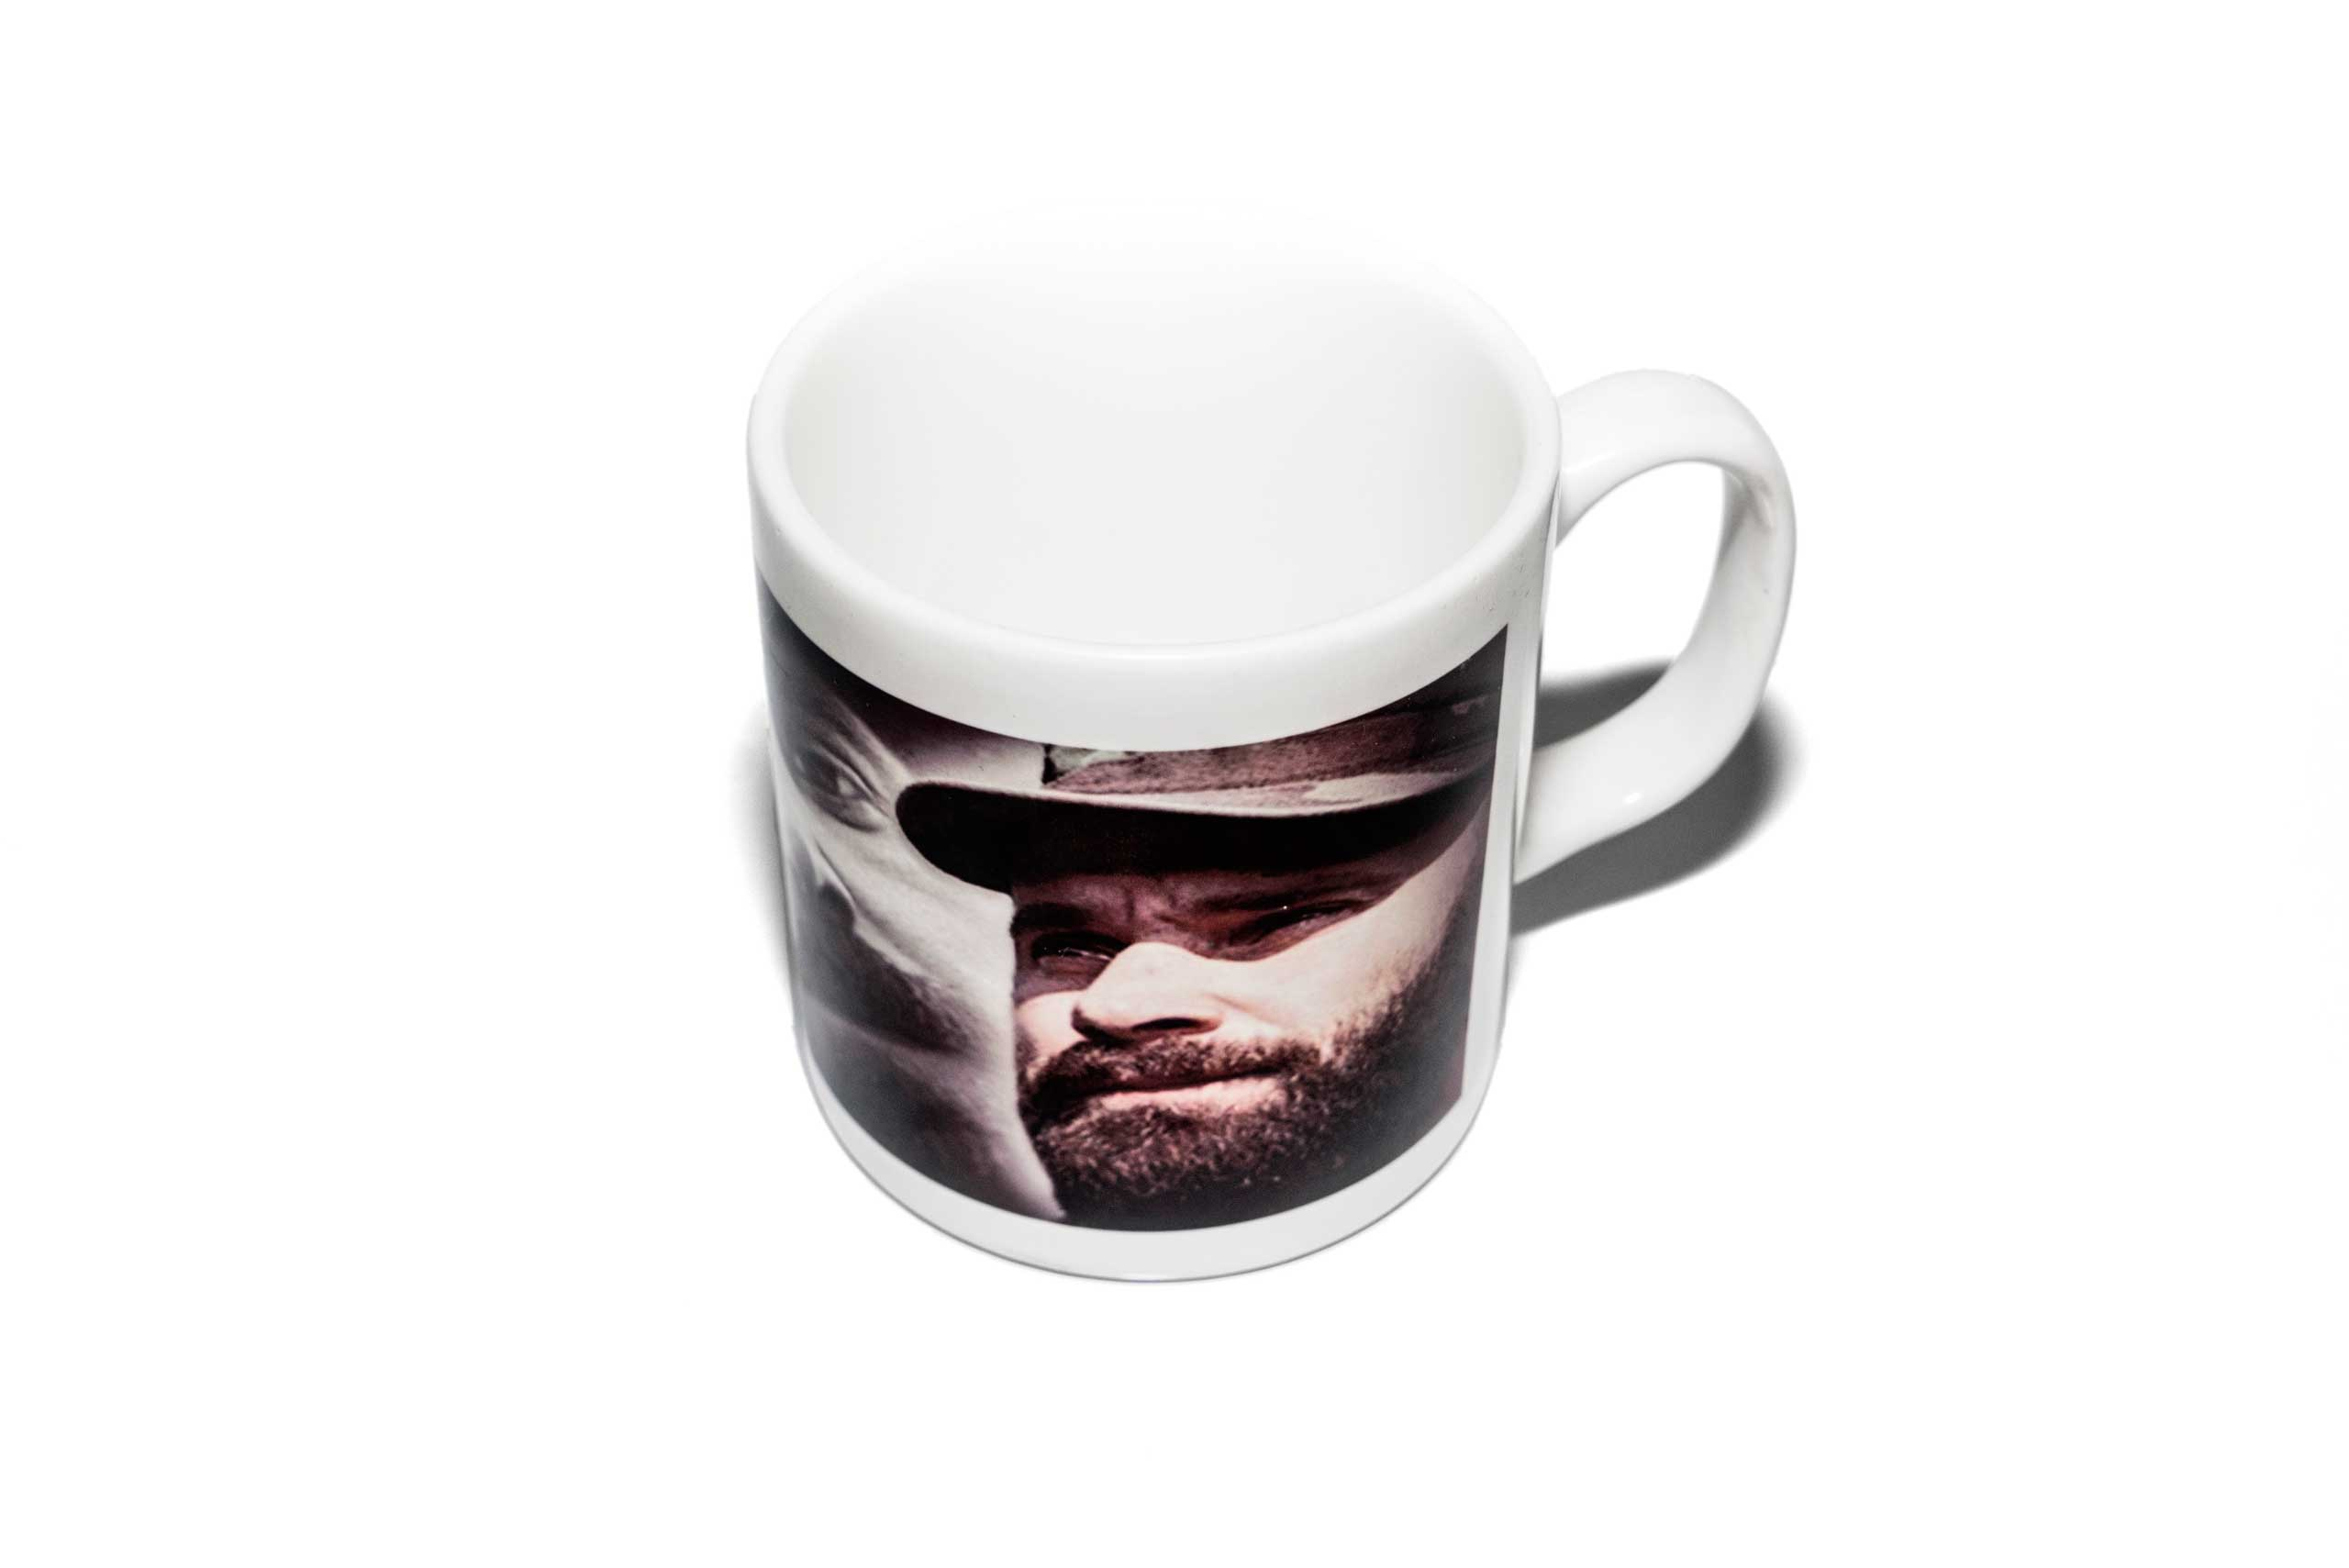 A mug with a militant commander's portrait on the side, found in a Islamic clothing and accessory shop in the Bagcilar district of Istanbul, Turkey.